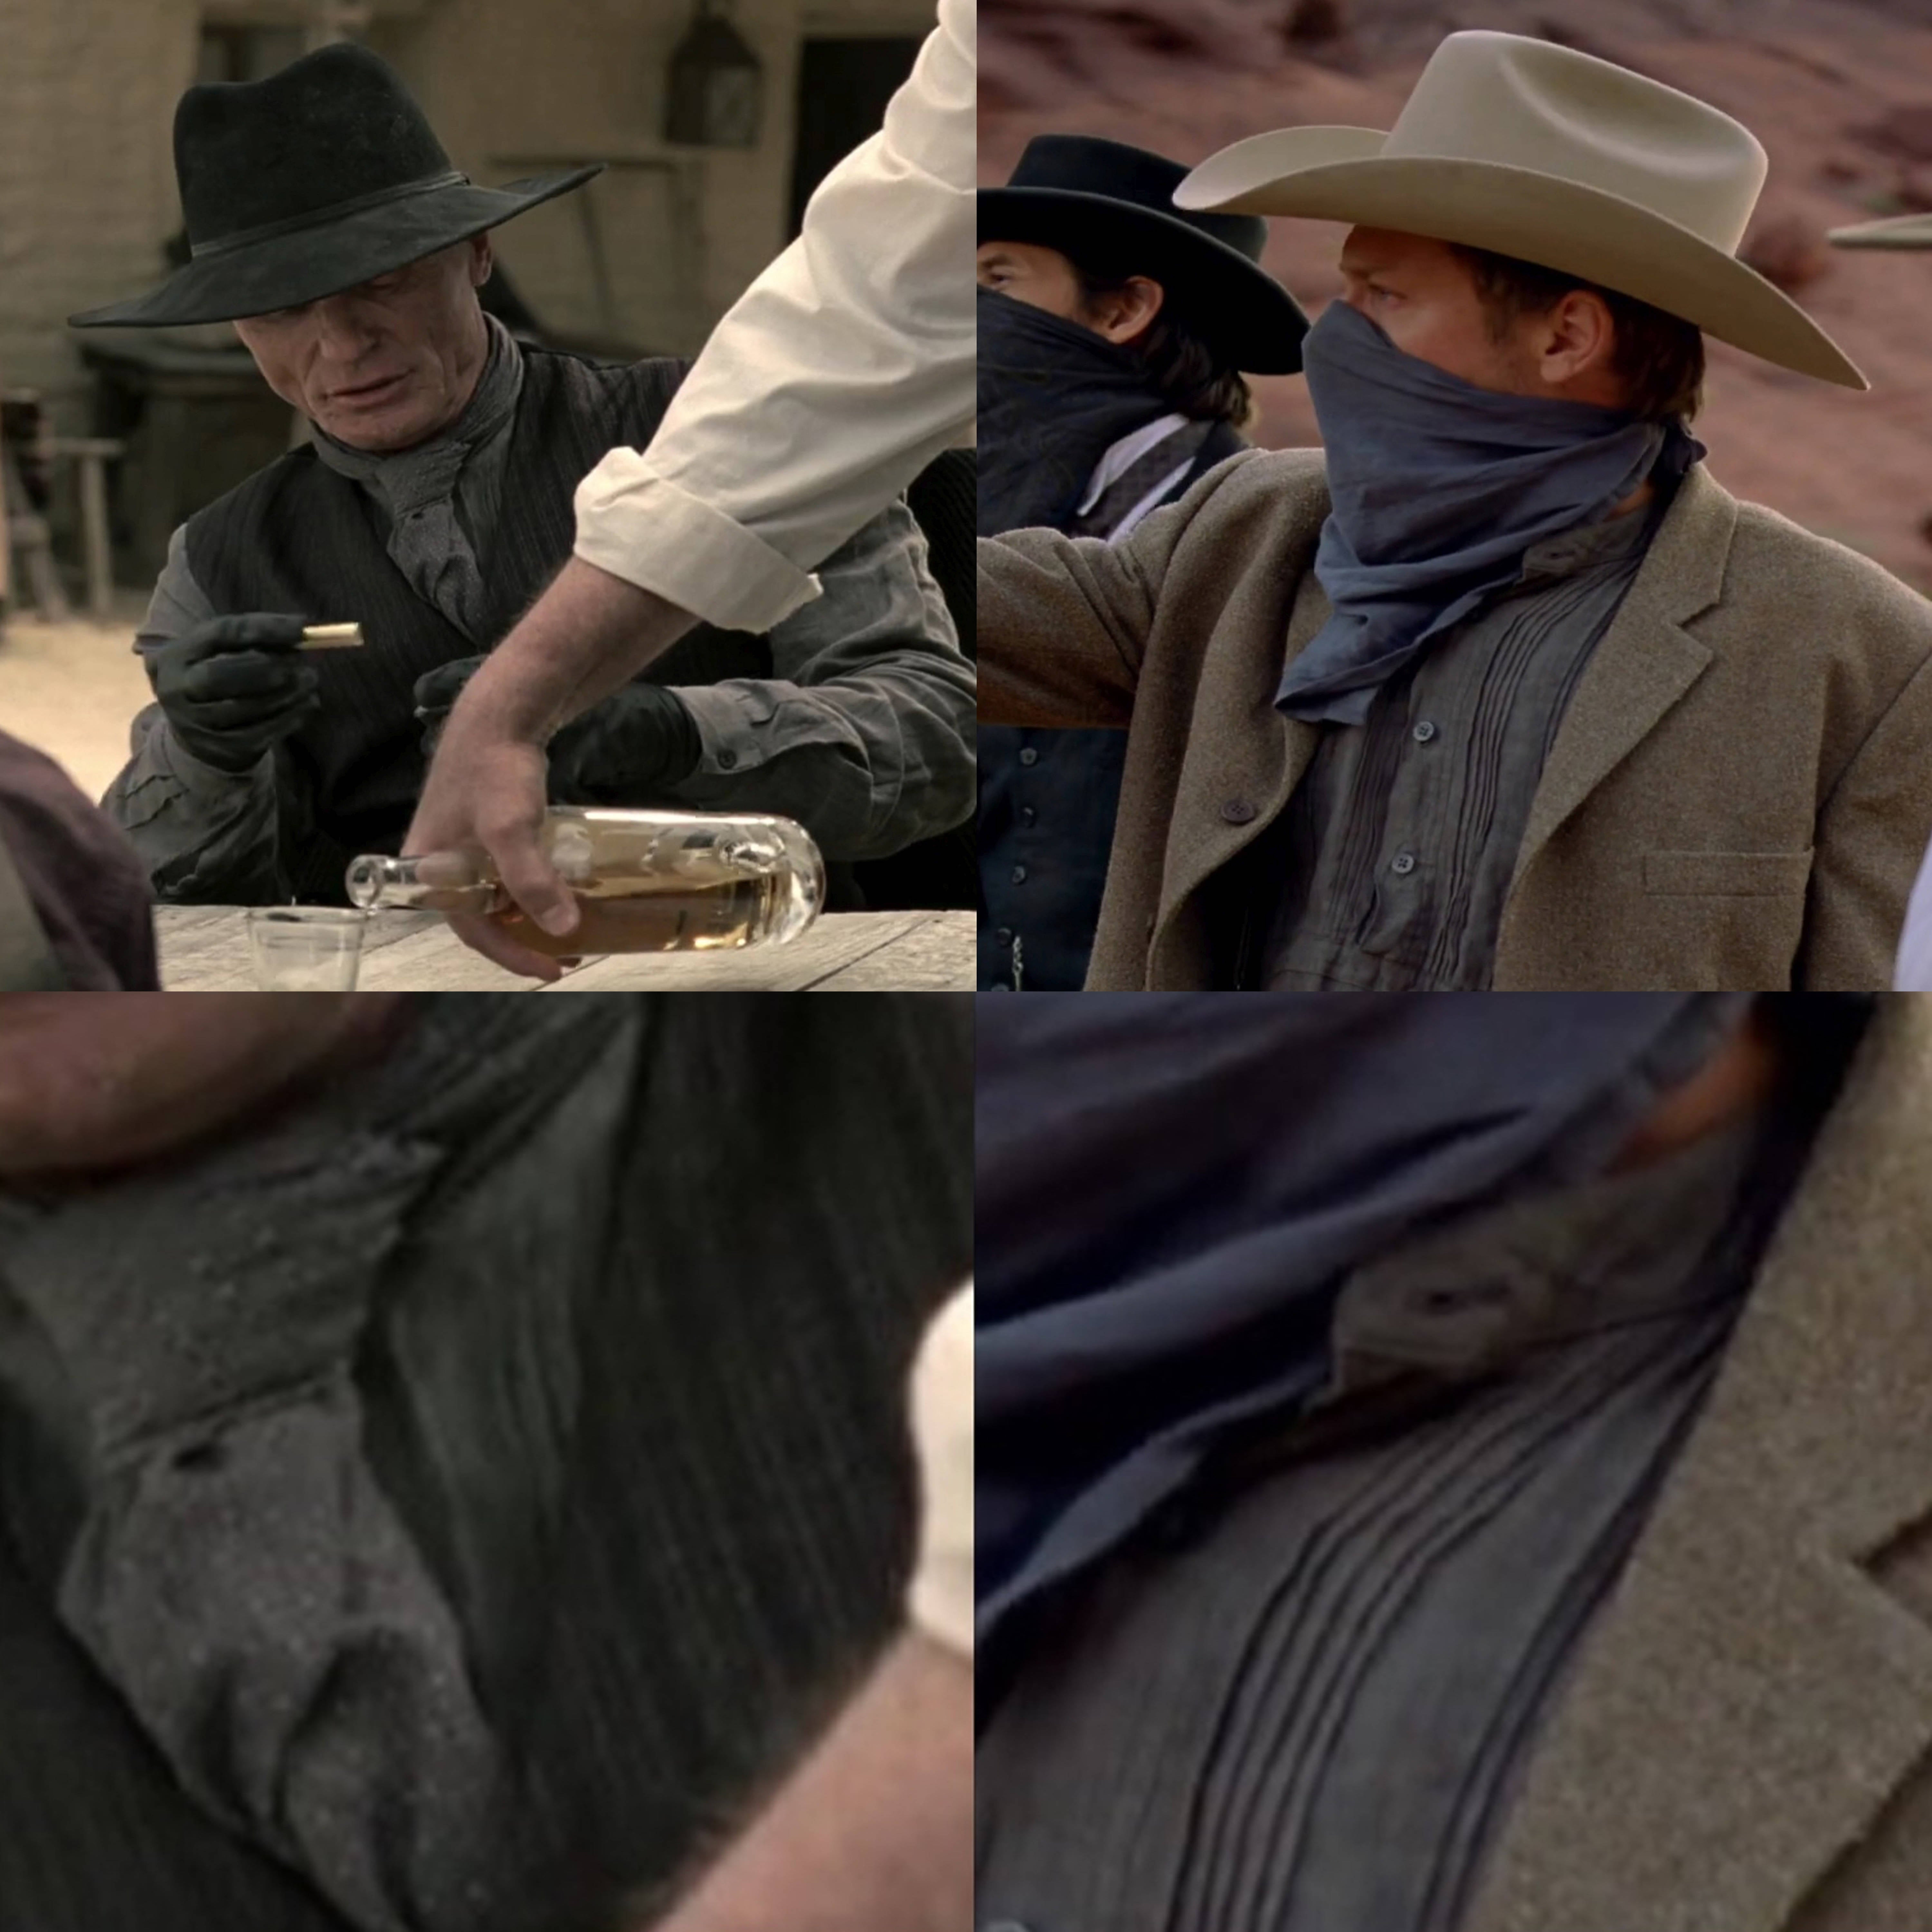 Westworld The Man In Black Is William Based On This Clue